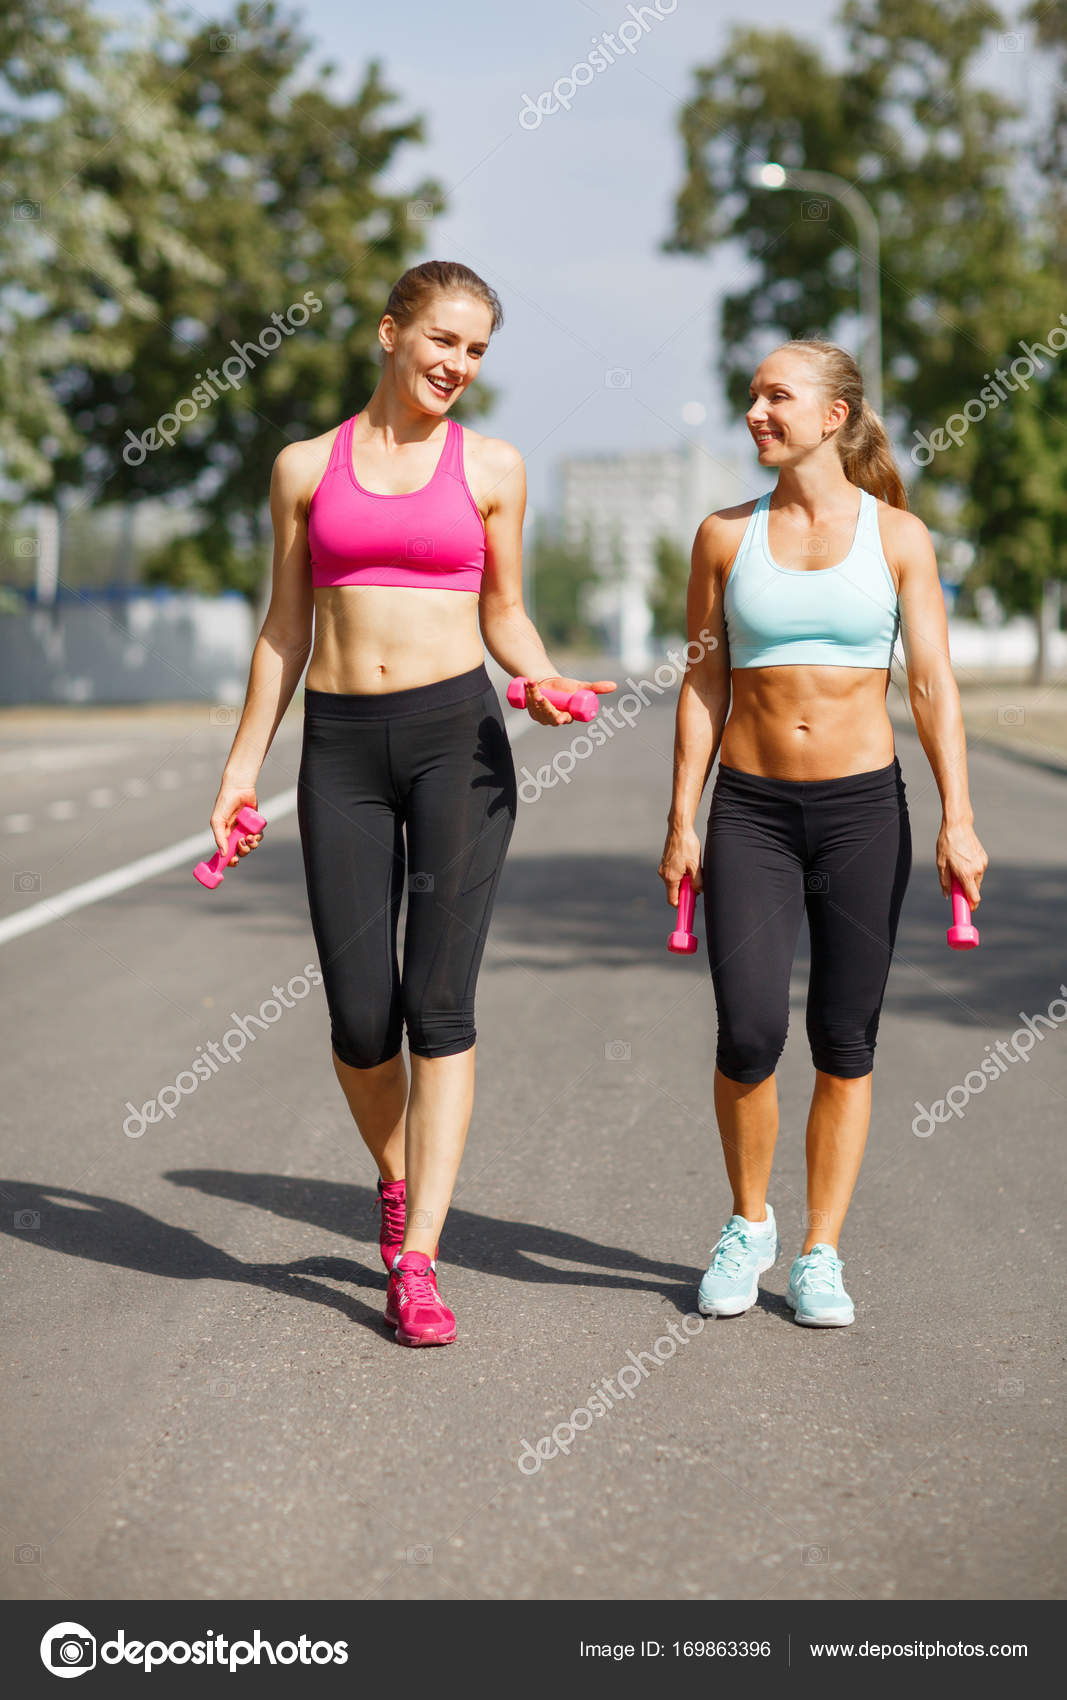 Sexy Sports Girls With Bottles Of Water Walking On A Park Background Fitness Concept Copy Space Stock Photo Image By C Alfa4studio 169863396